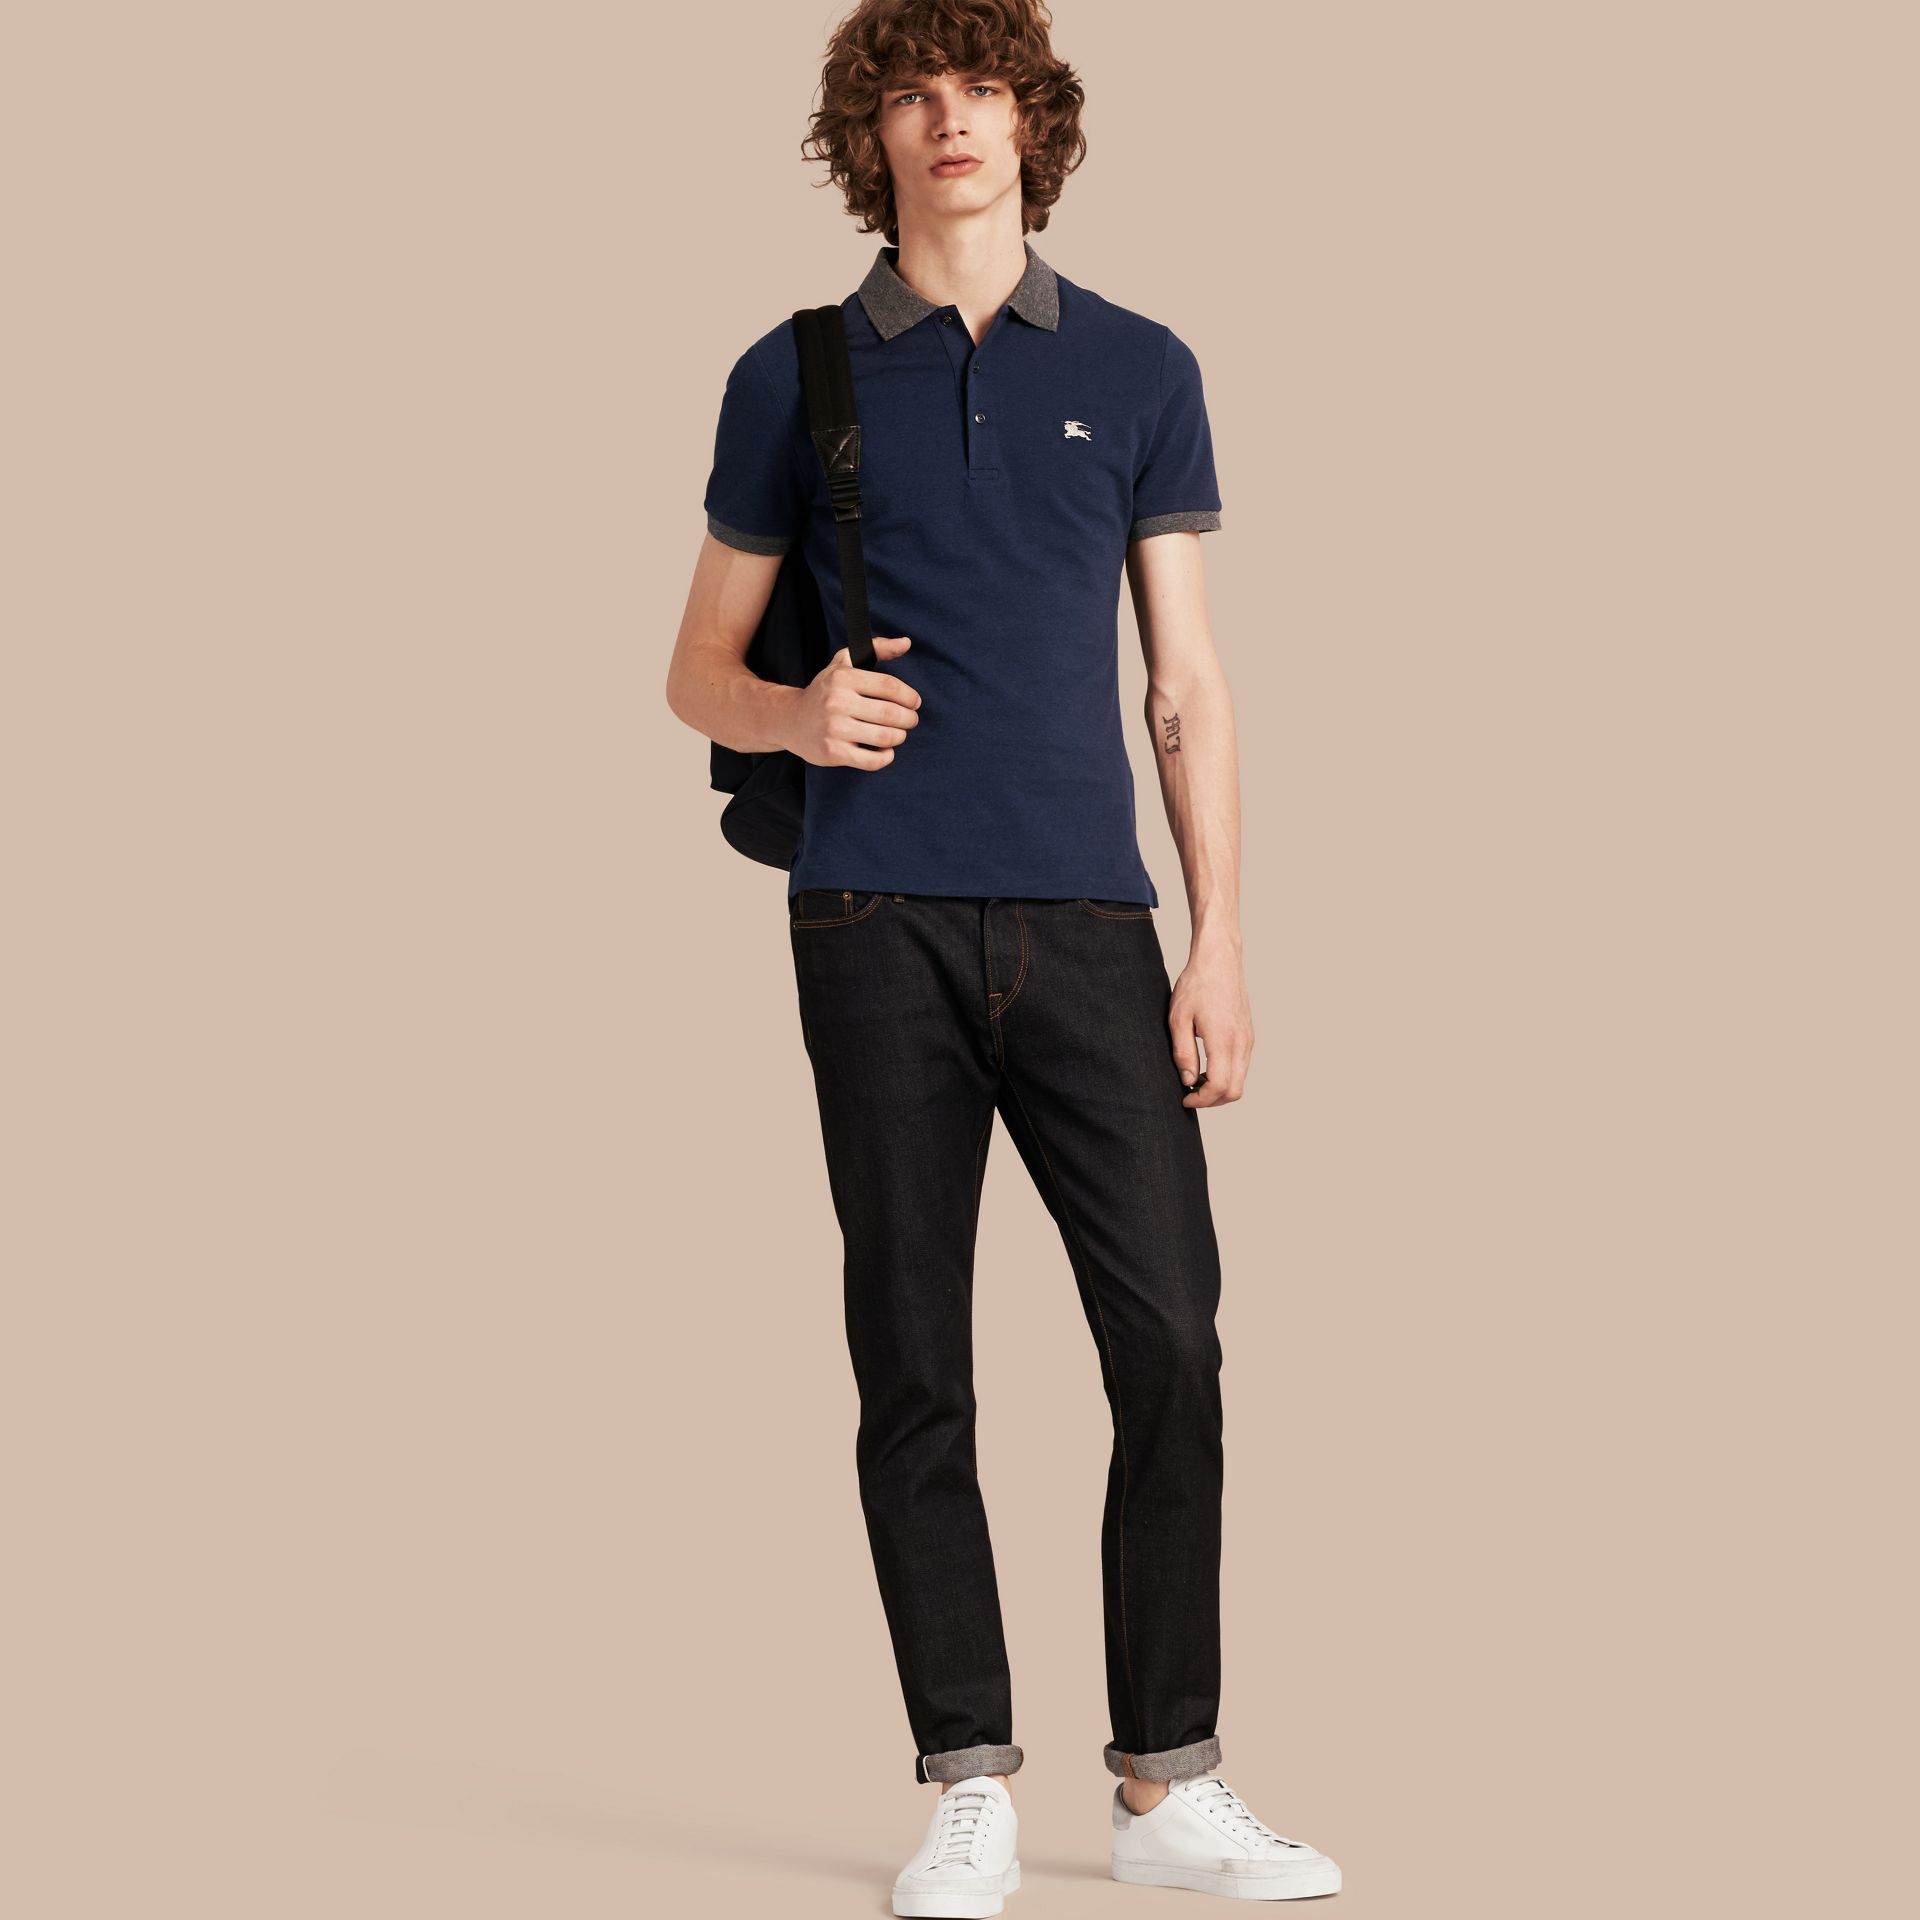 Navy melange Contrast Colour Detail Cotton Piqué Polo Shirt Navy Melange - gallery image 1